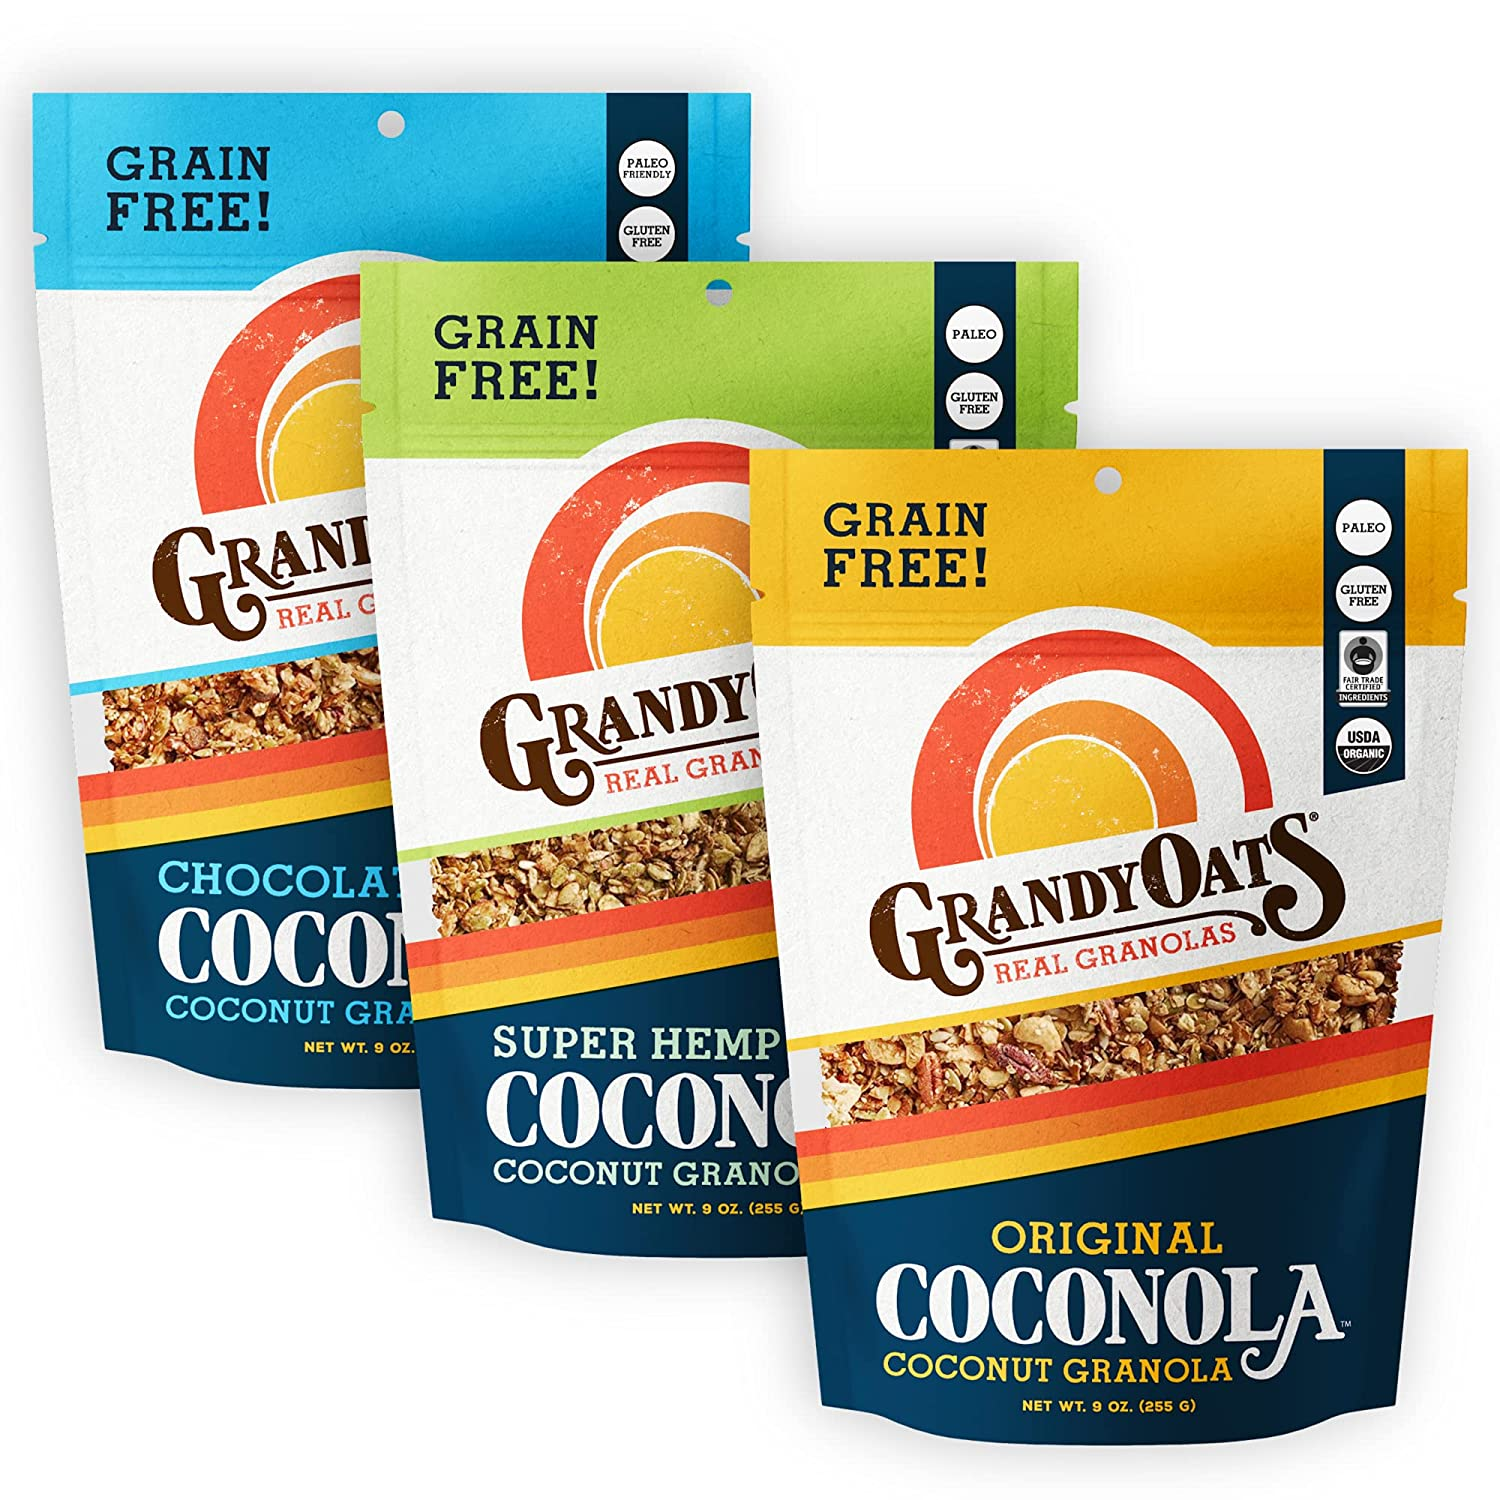 GrandyOats Organic online shop NEW before selling Coconut Granola Variety - Glut Coconola Pack